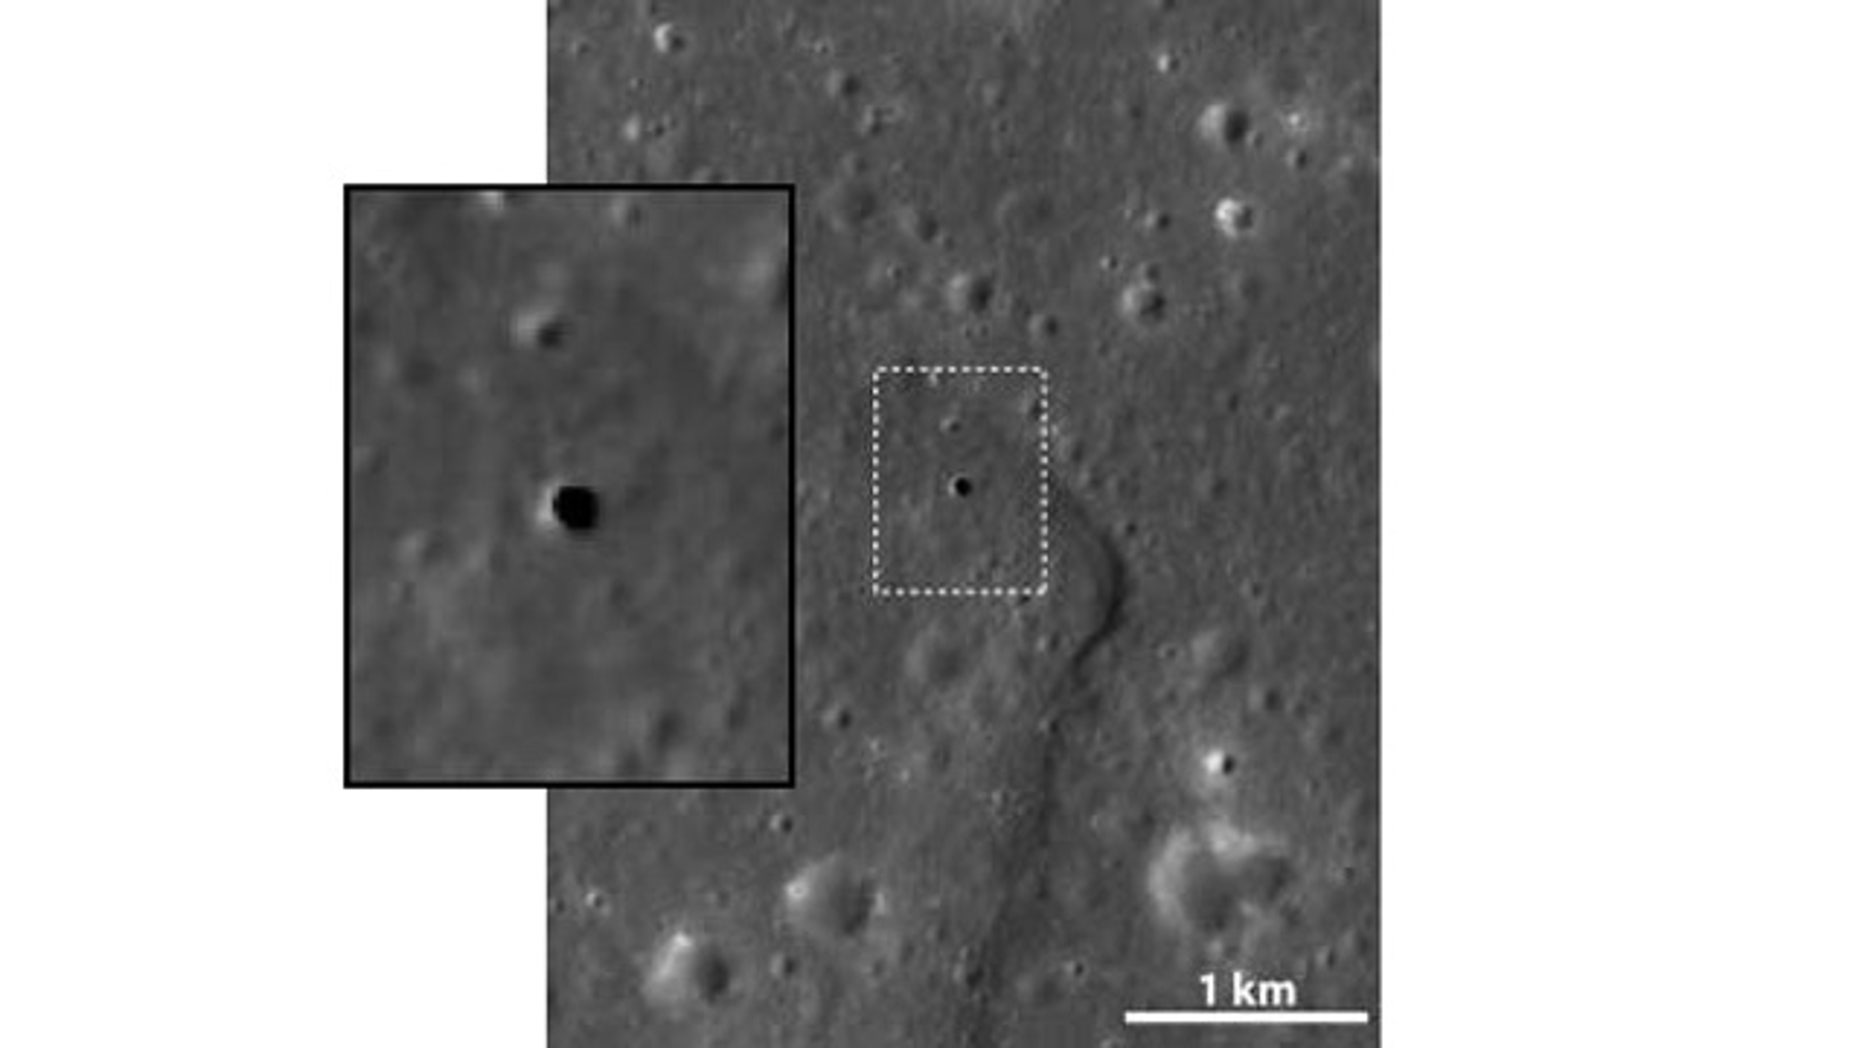 This apparent hole in the moon is like a skylight, a vertical cave 213 feet across and some 262 to 289 feet deep. It is thought to be a collapsed lava tube. The inset shows close-up of the boxed area.